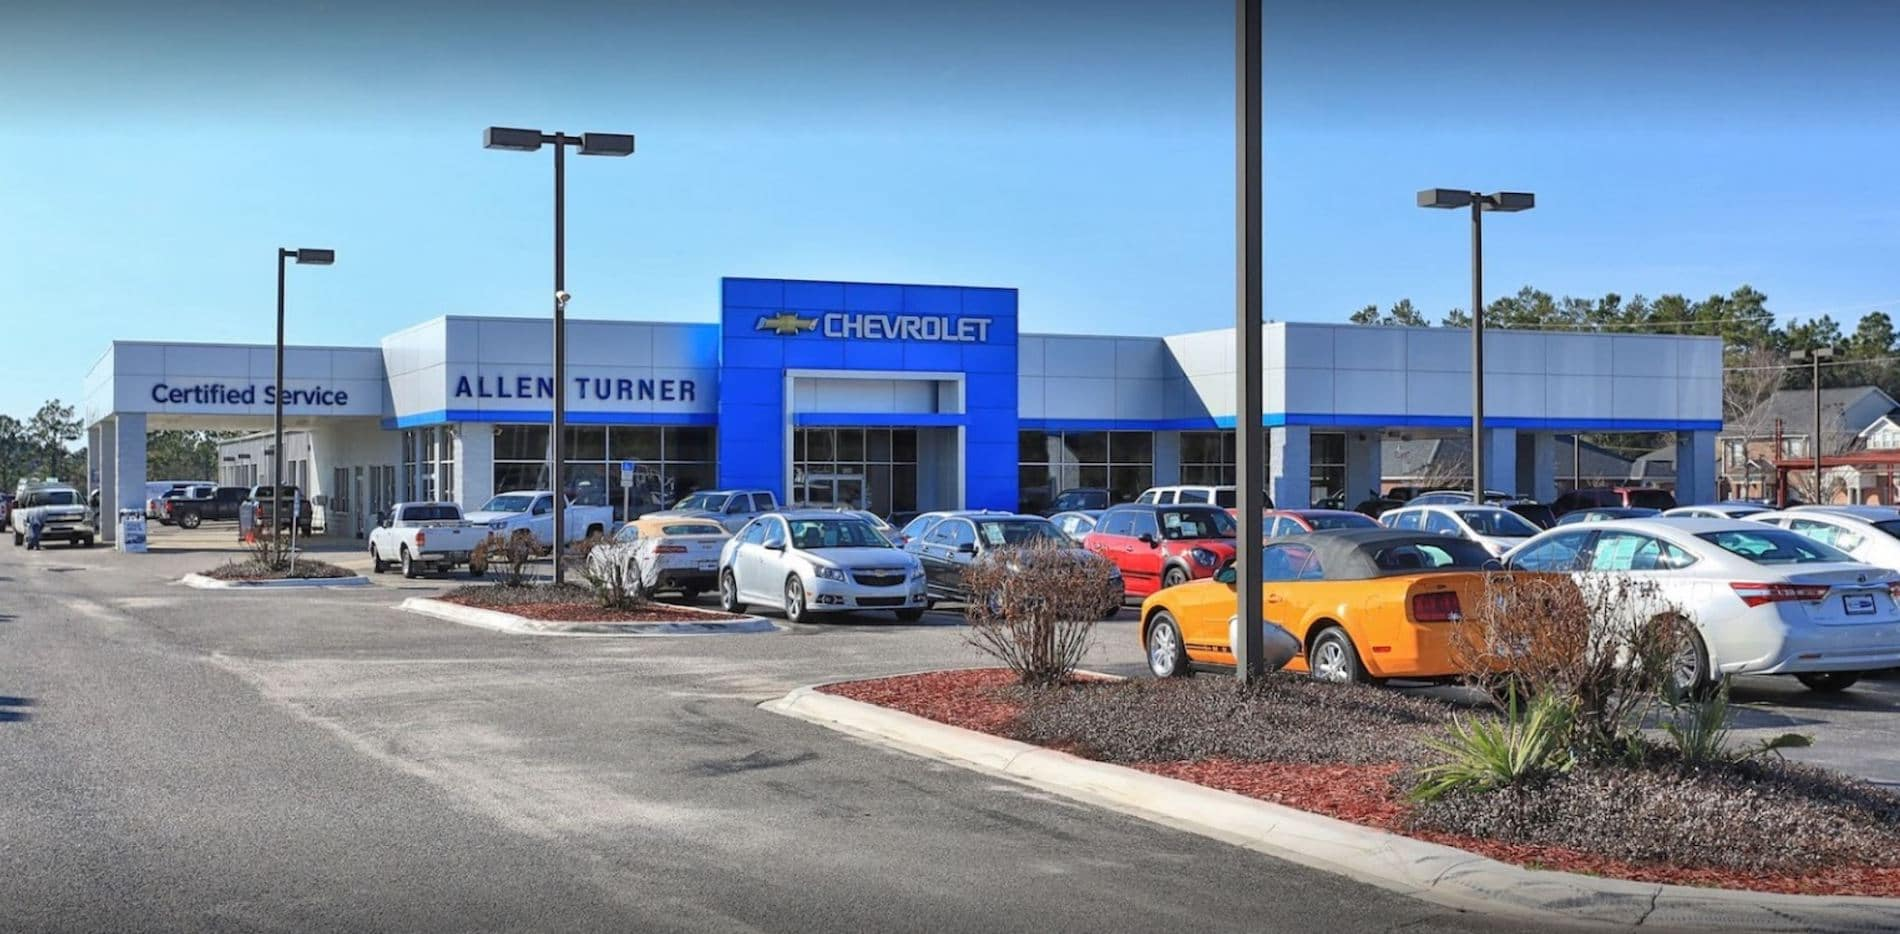 An exterior shot of a Chevrolet dealership with inventory in image